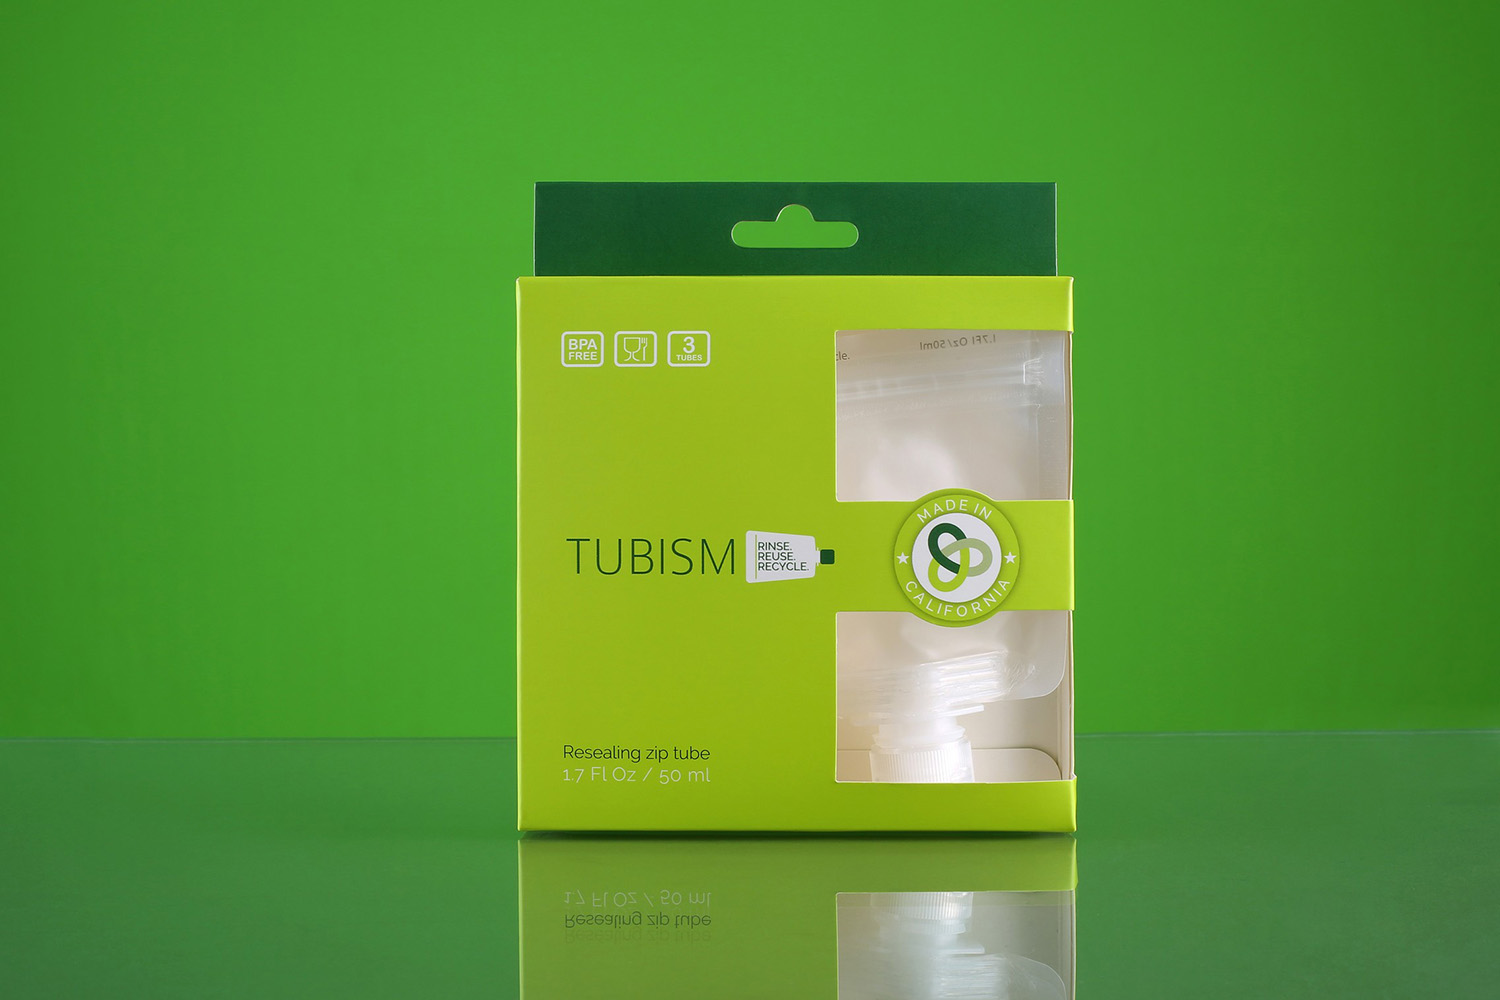 Tubism travel containers - pack of three 50 ml tubes